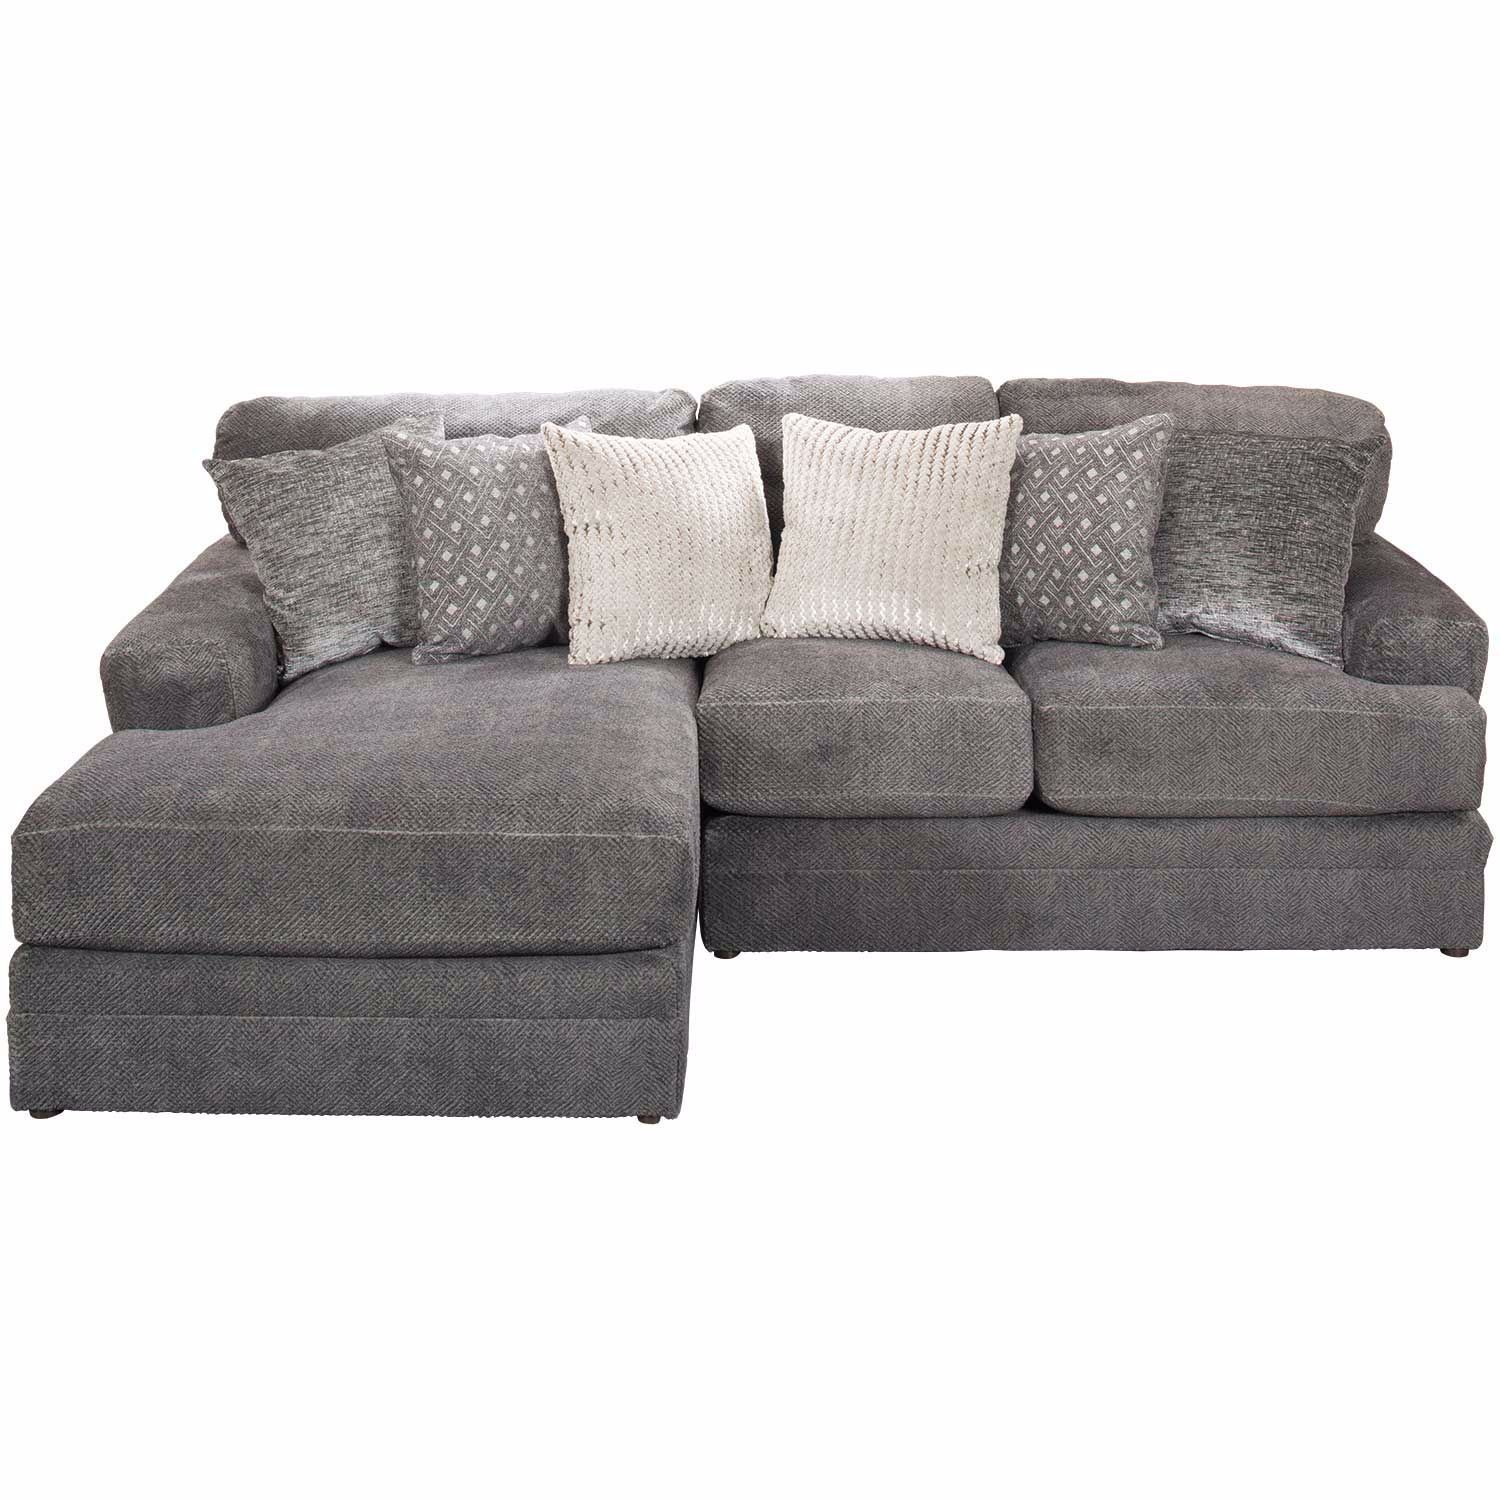 Mammoth 2 Piece Sectional With Laf Chaise Jackson Furniture